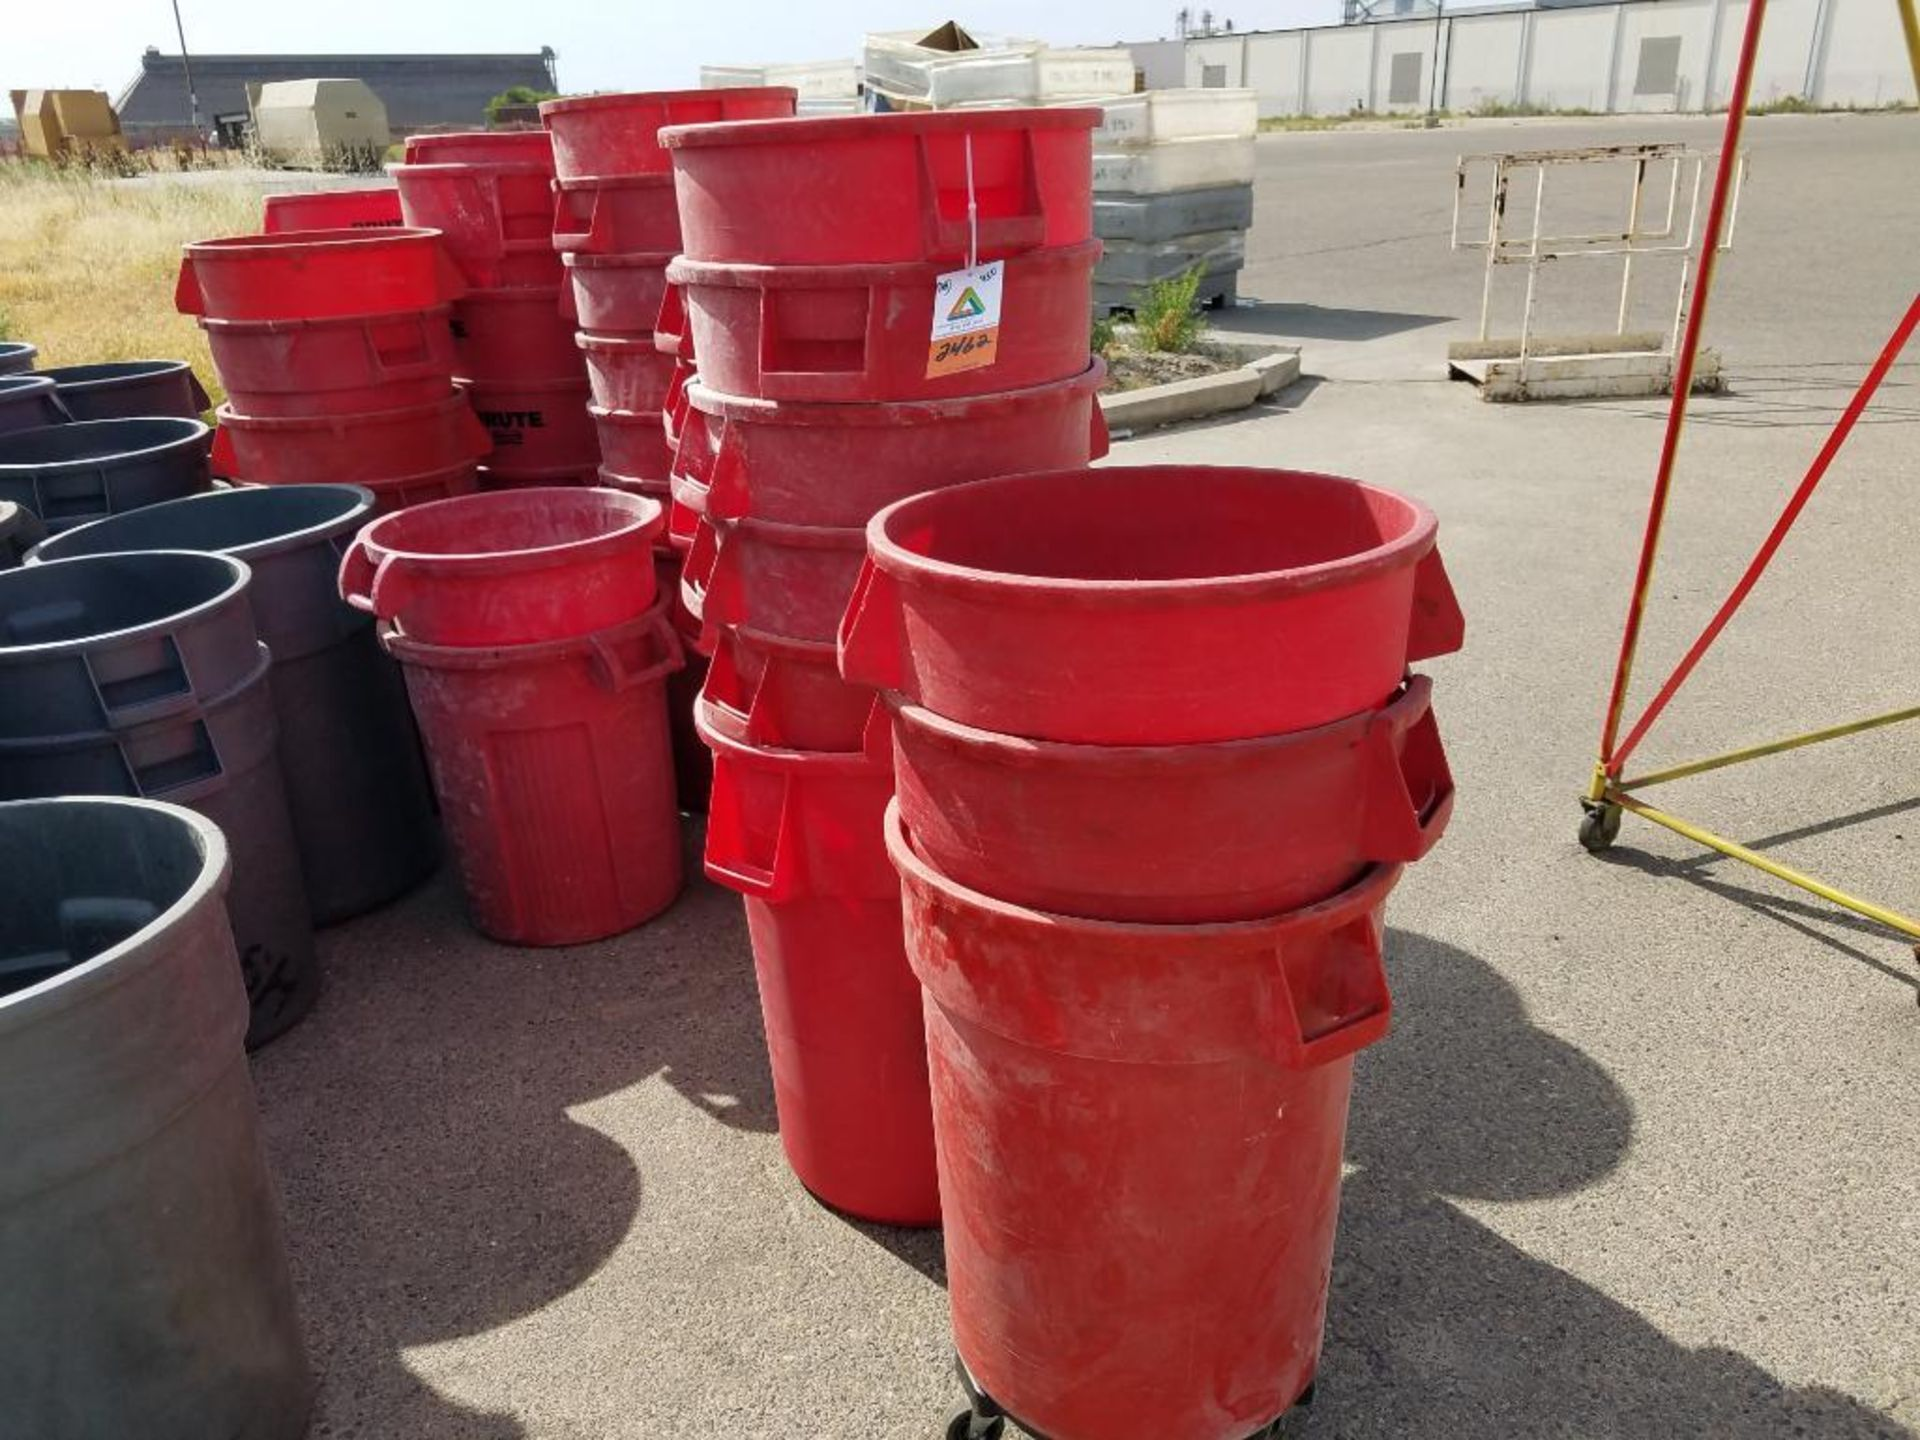 Brute red garbage cans